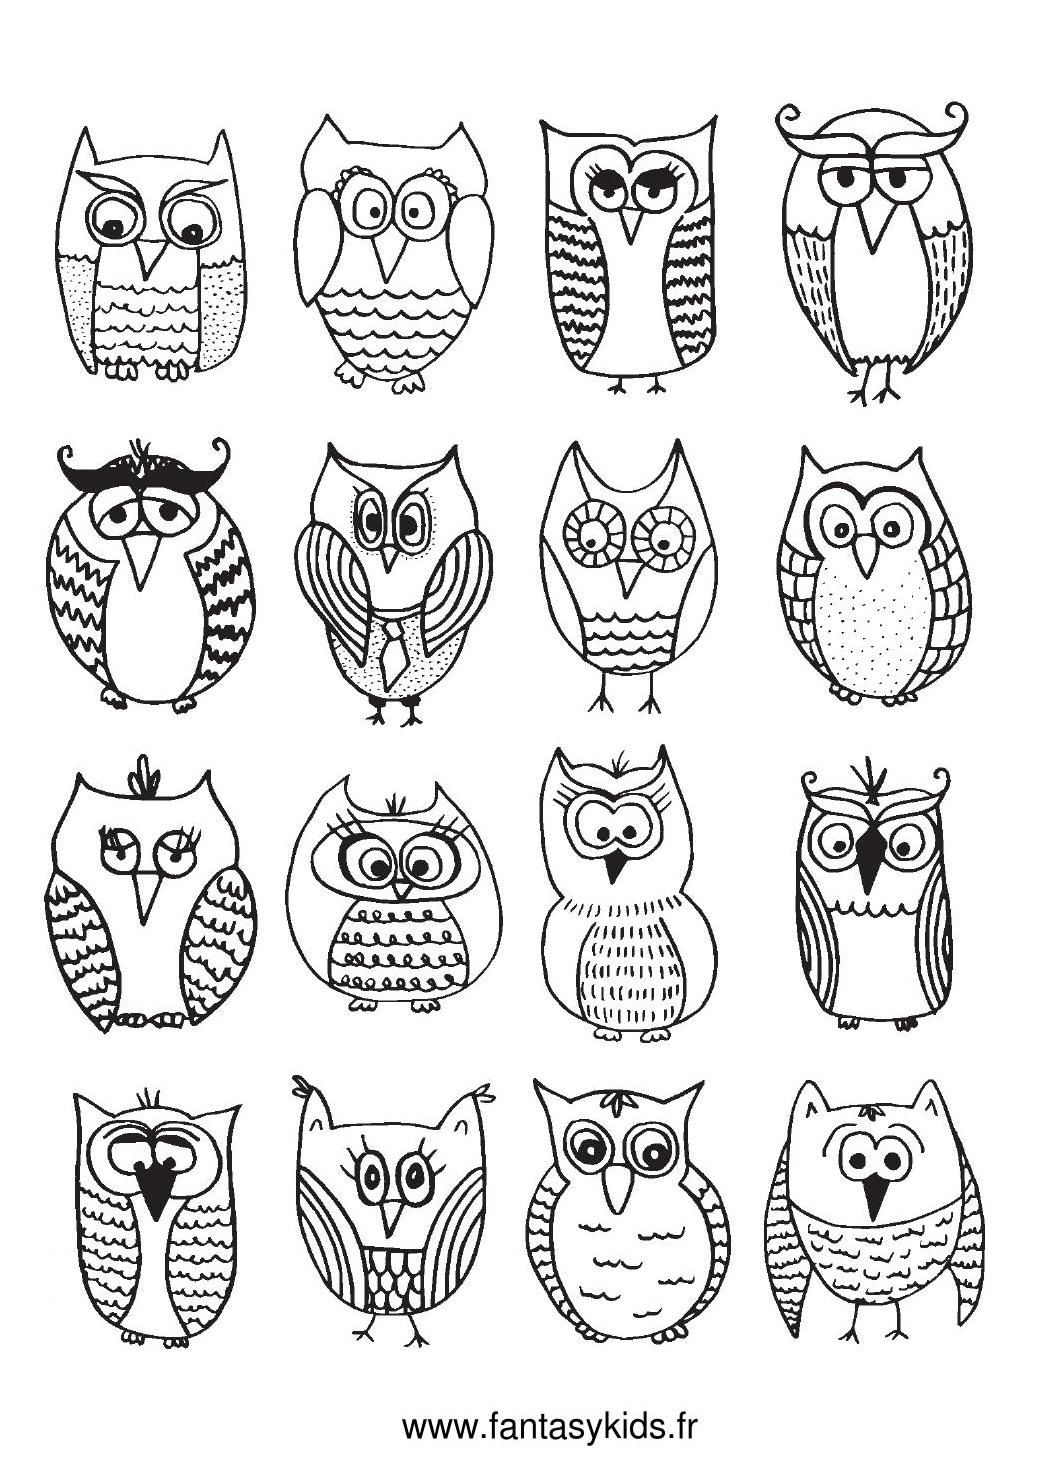 Coloriage chouettes et hiboux coloring pages for adults printables and freebies pinterest - Dessin colorier ...